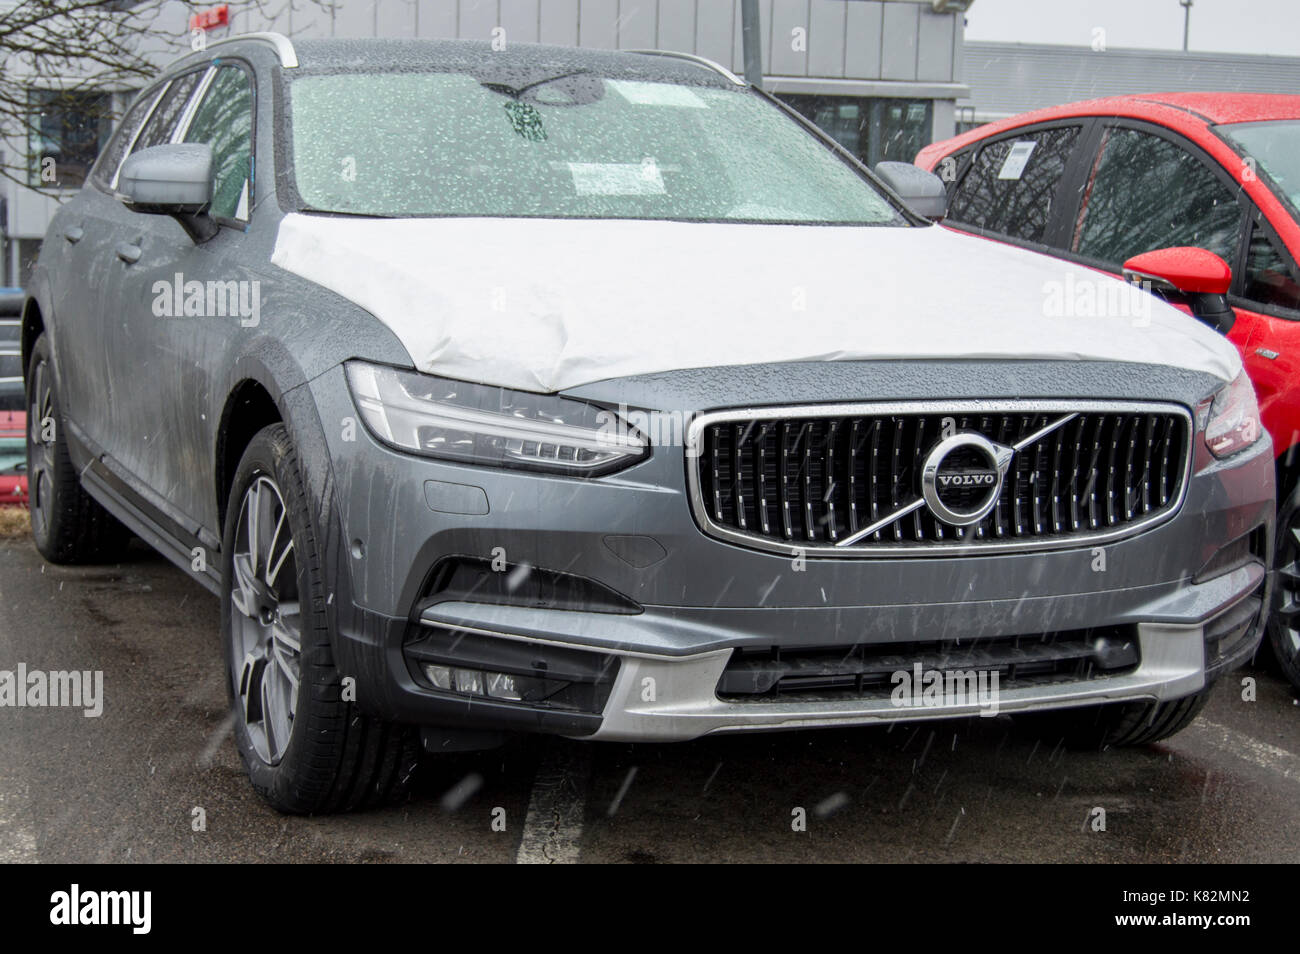 Volvo V90 High Resolution Stock Photography And Images Alamy